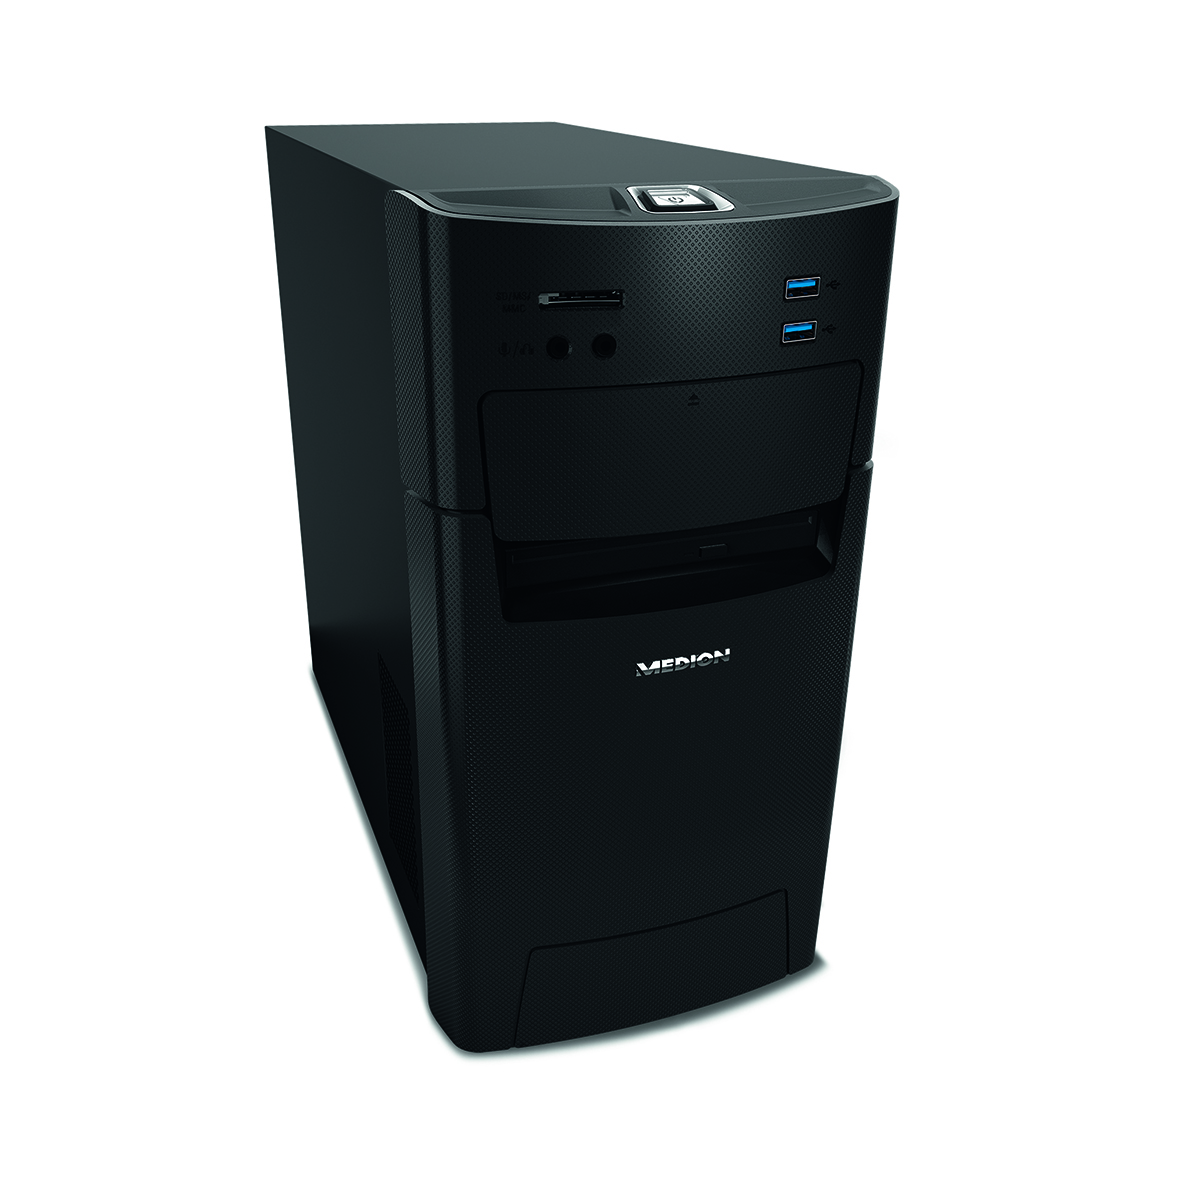 Test: MD8836 byder på god hardware og drevplads til hot swappable harddisk